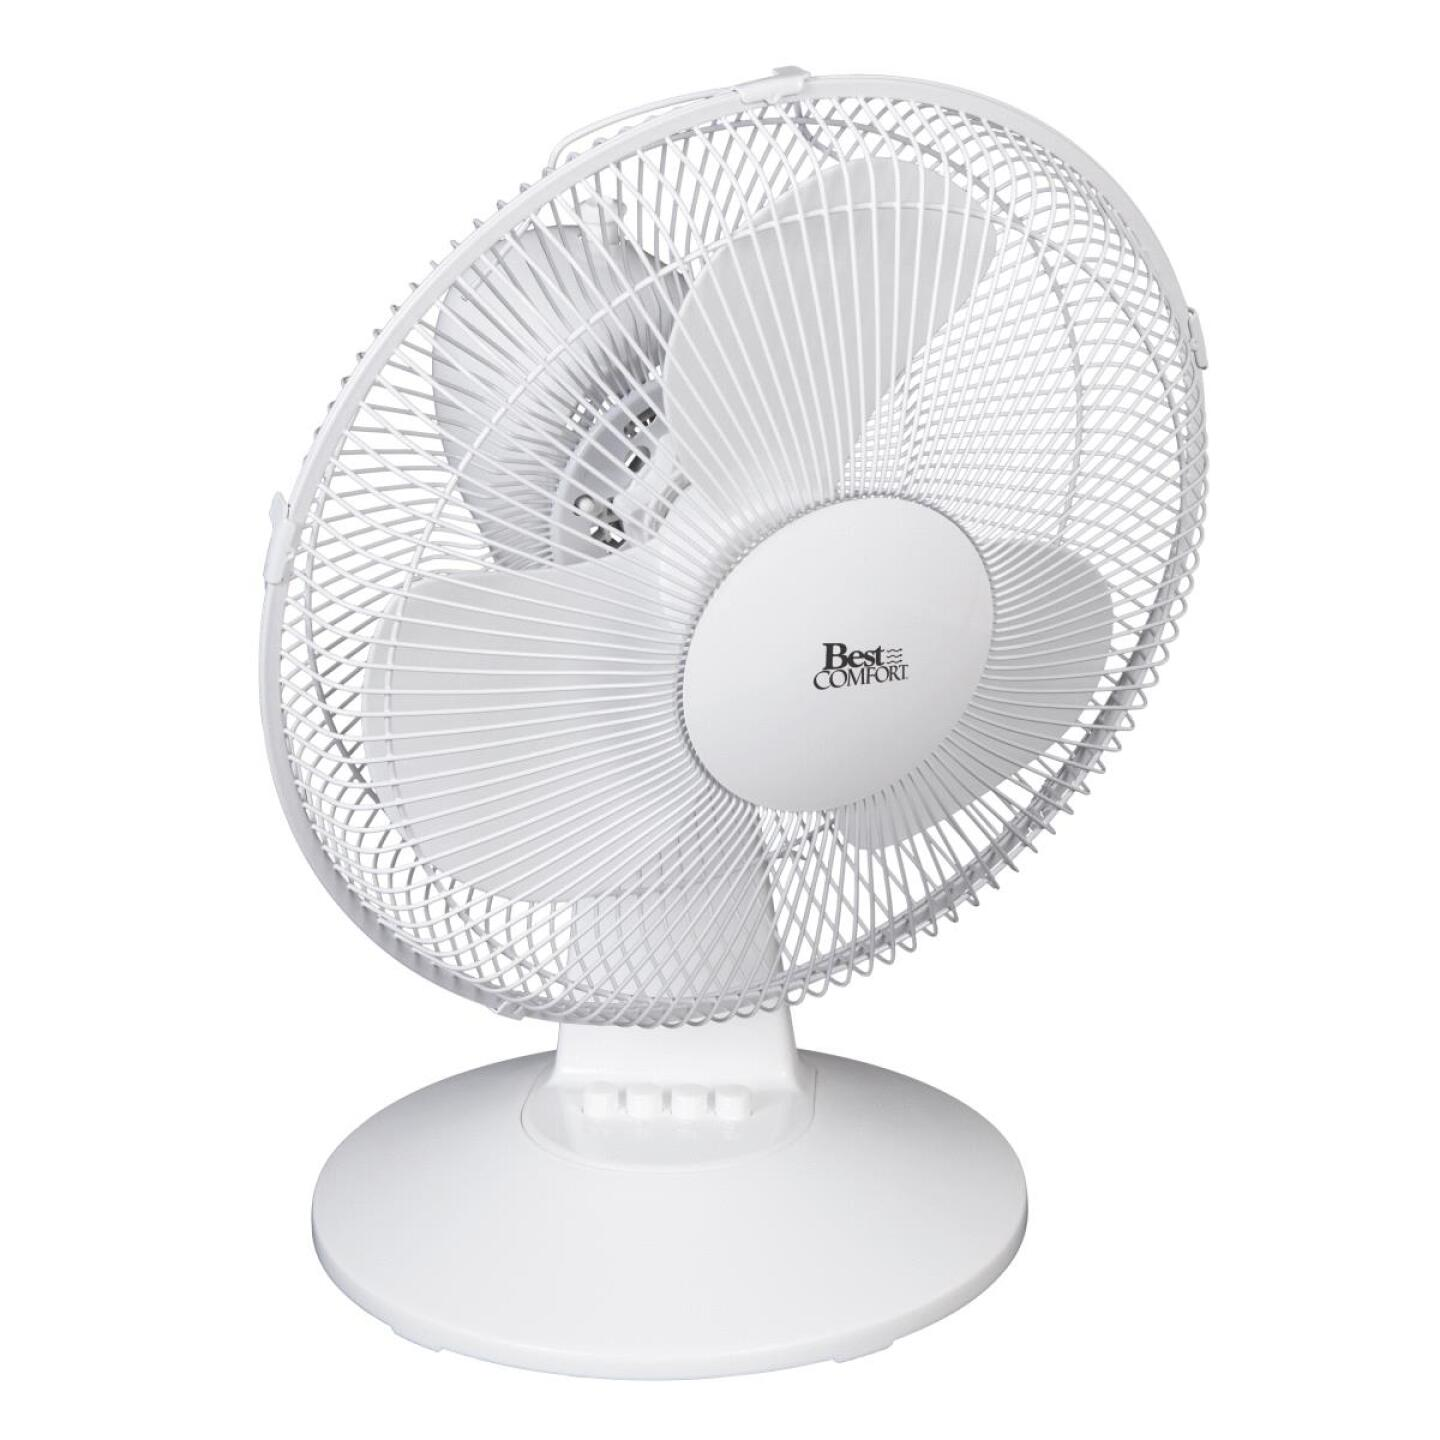 Best Comfort 12 In. 3-Speed White Oscillating Table Fan Image 3